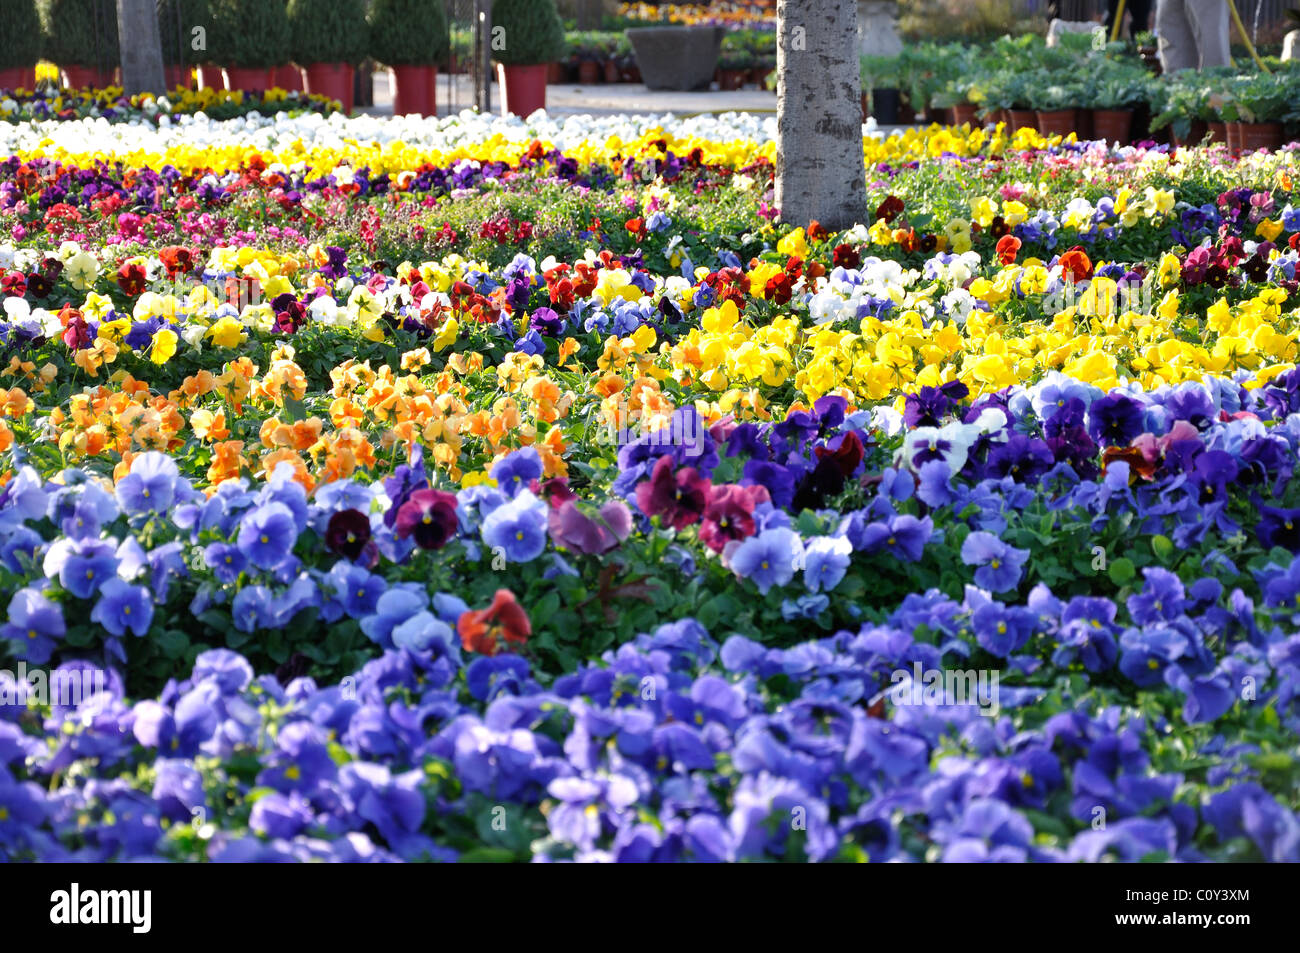 Spring Flowers For Sale At Farmers Market In Dallas Texas Usa